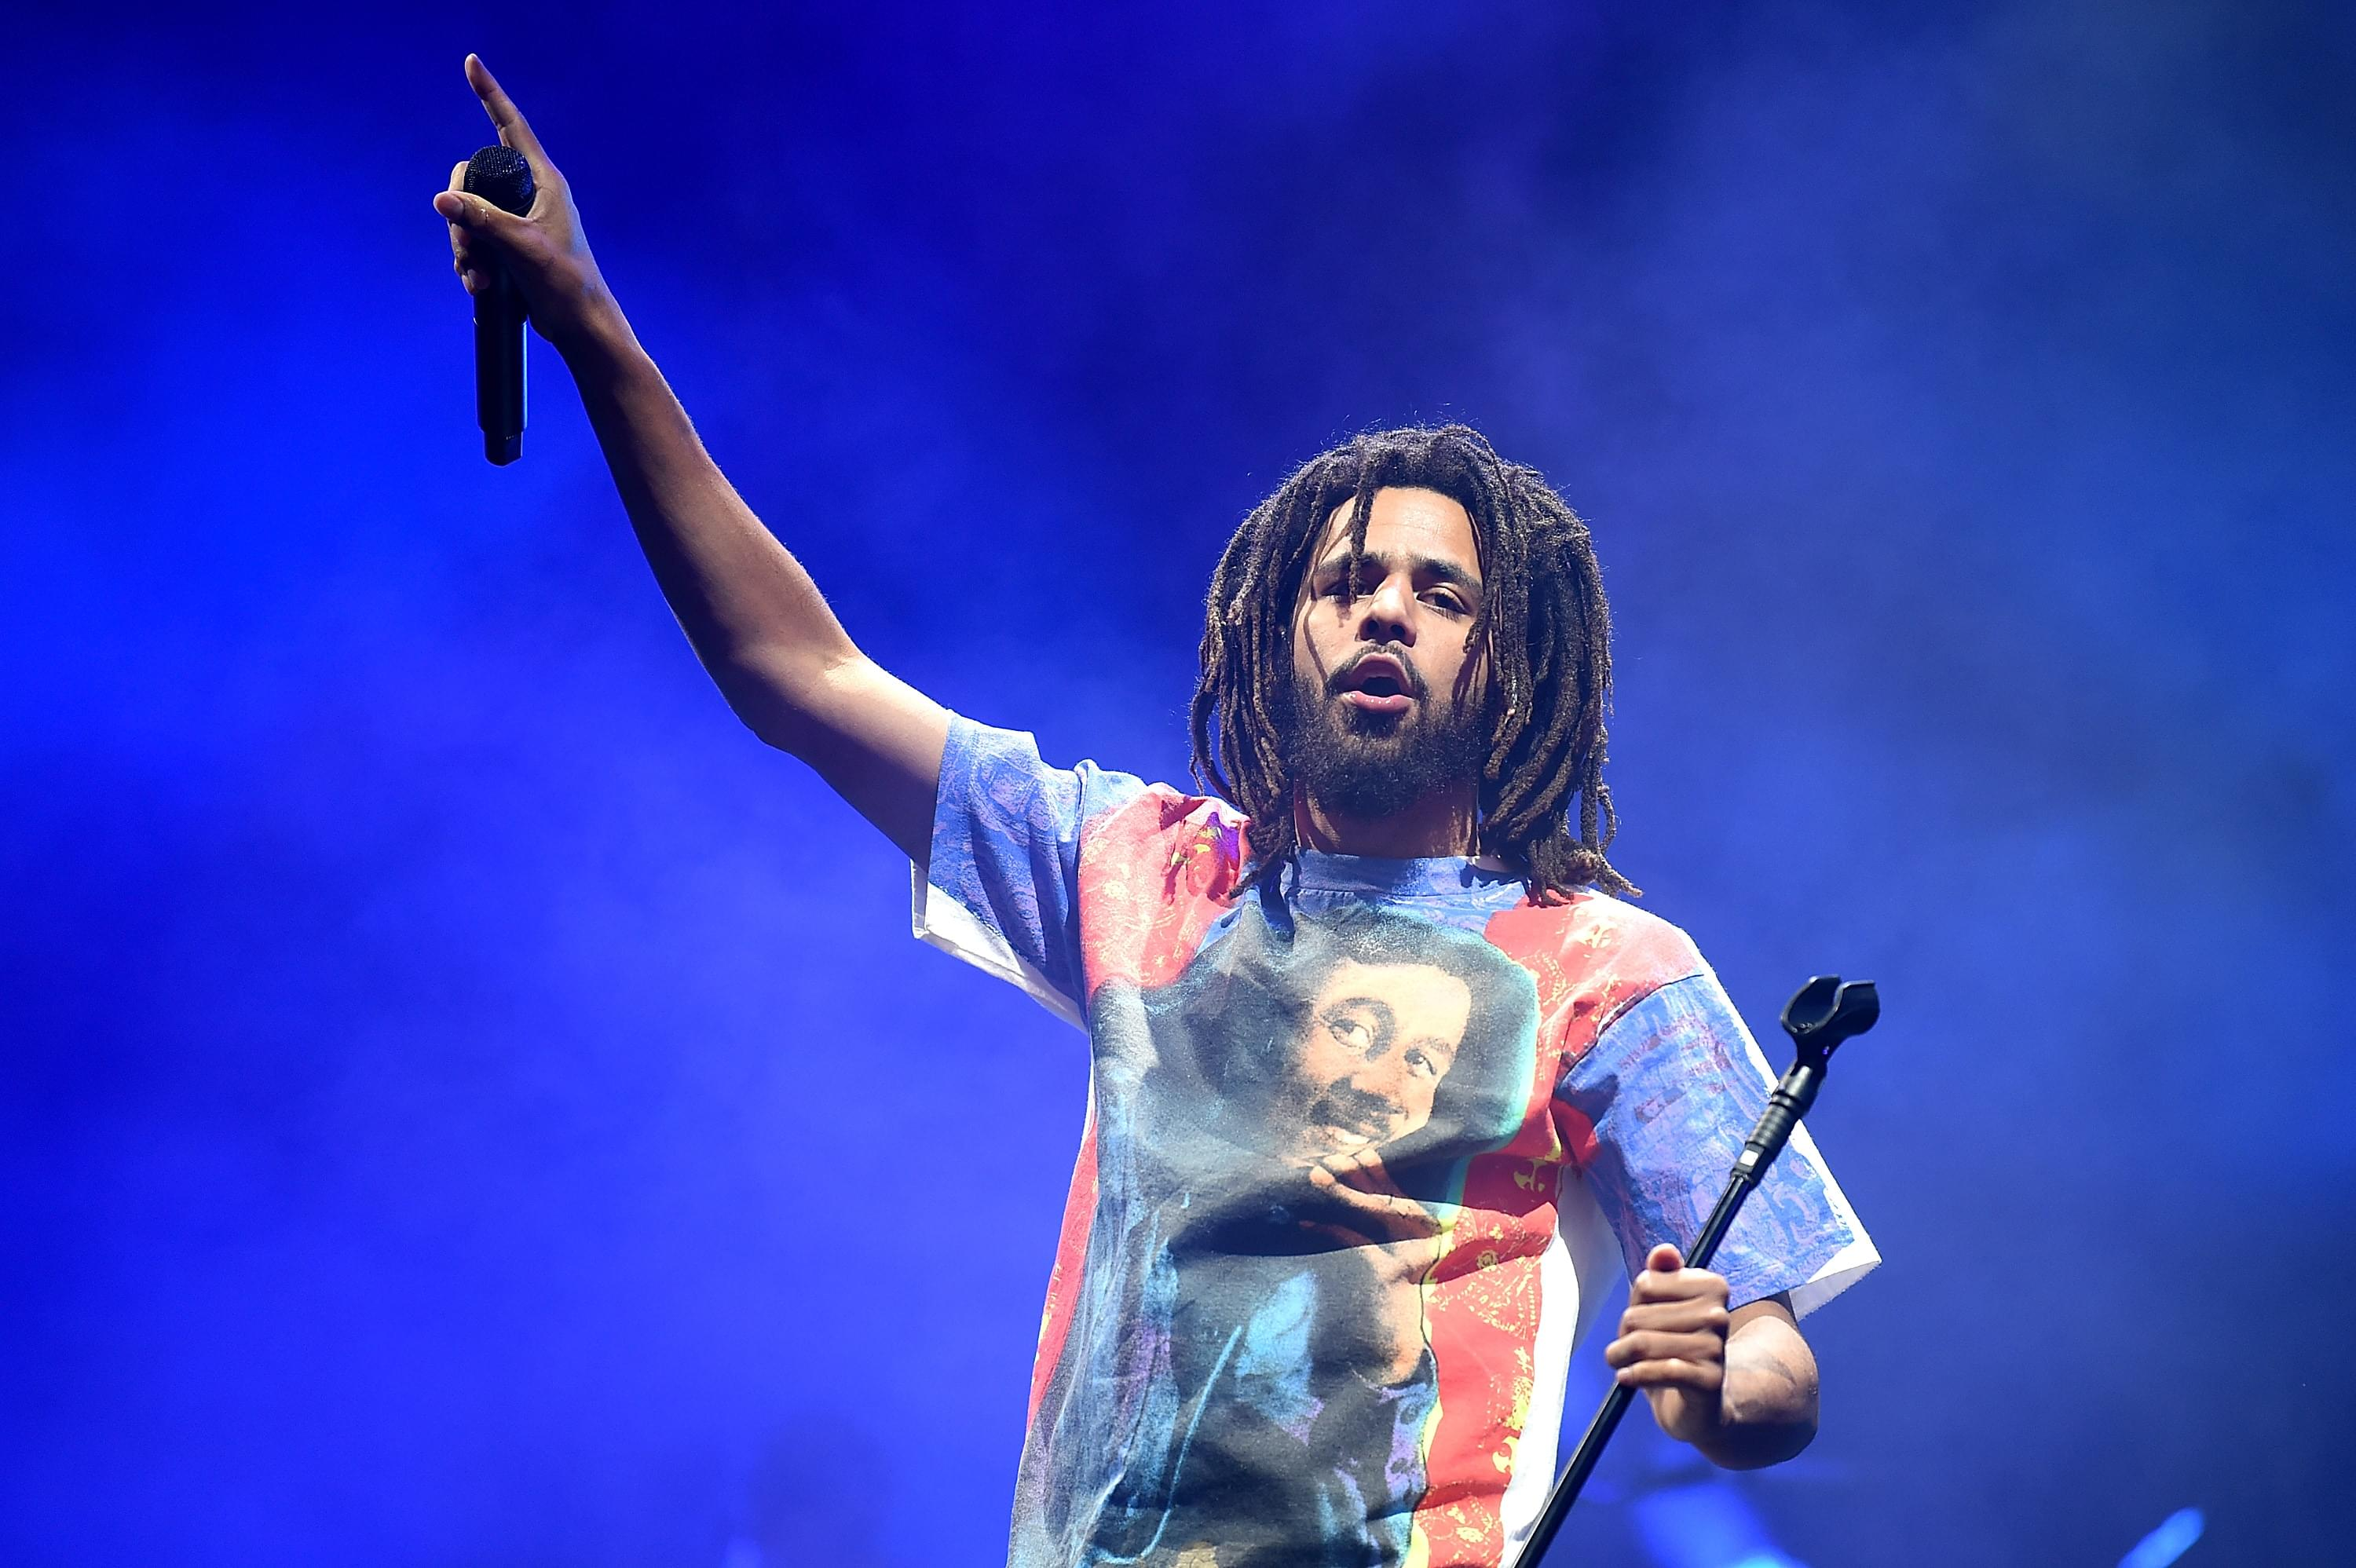 """J.Cole's """"Middle Child"""" Is Now the Highest-Charting Song of His Career"""